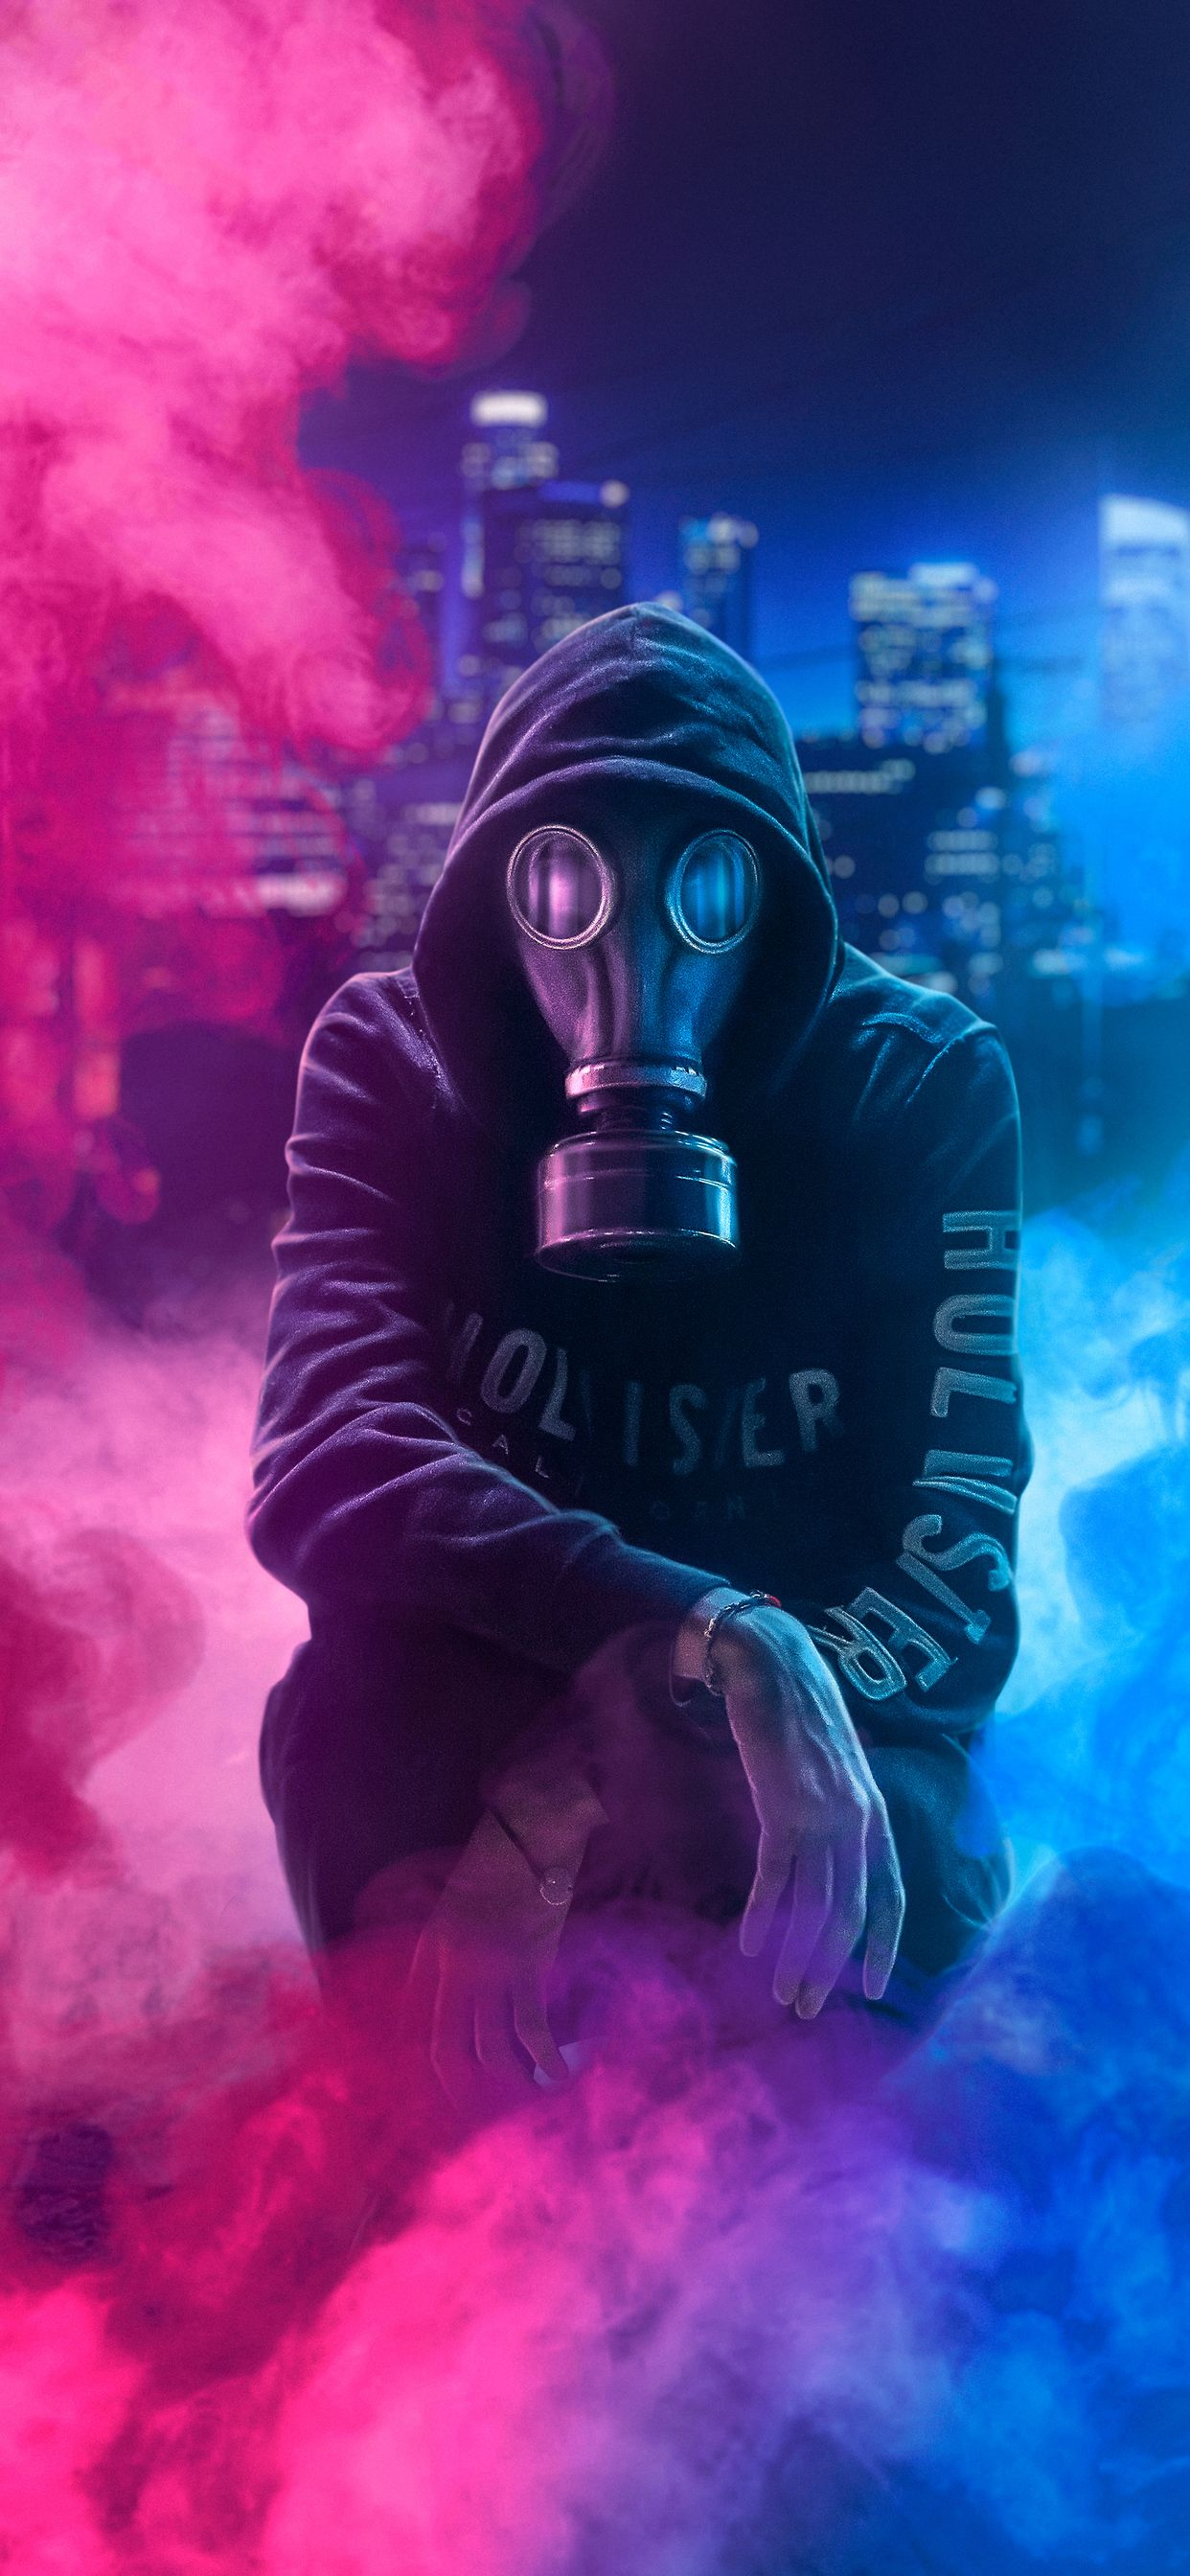 Anime Gas Mask Iphone Wallpaper in 2020 Iphone wallpaper